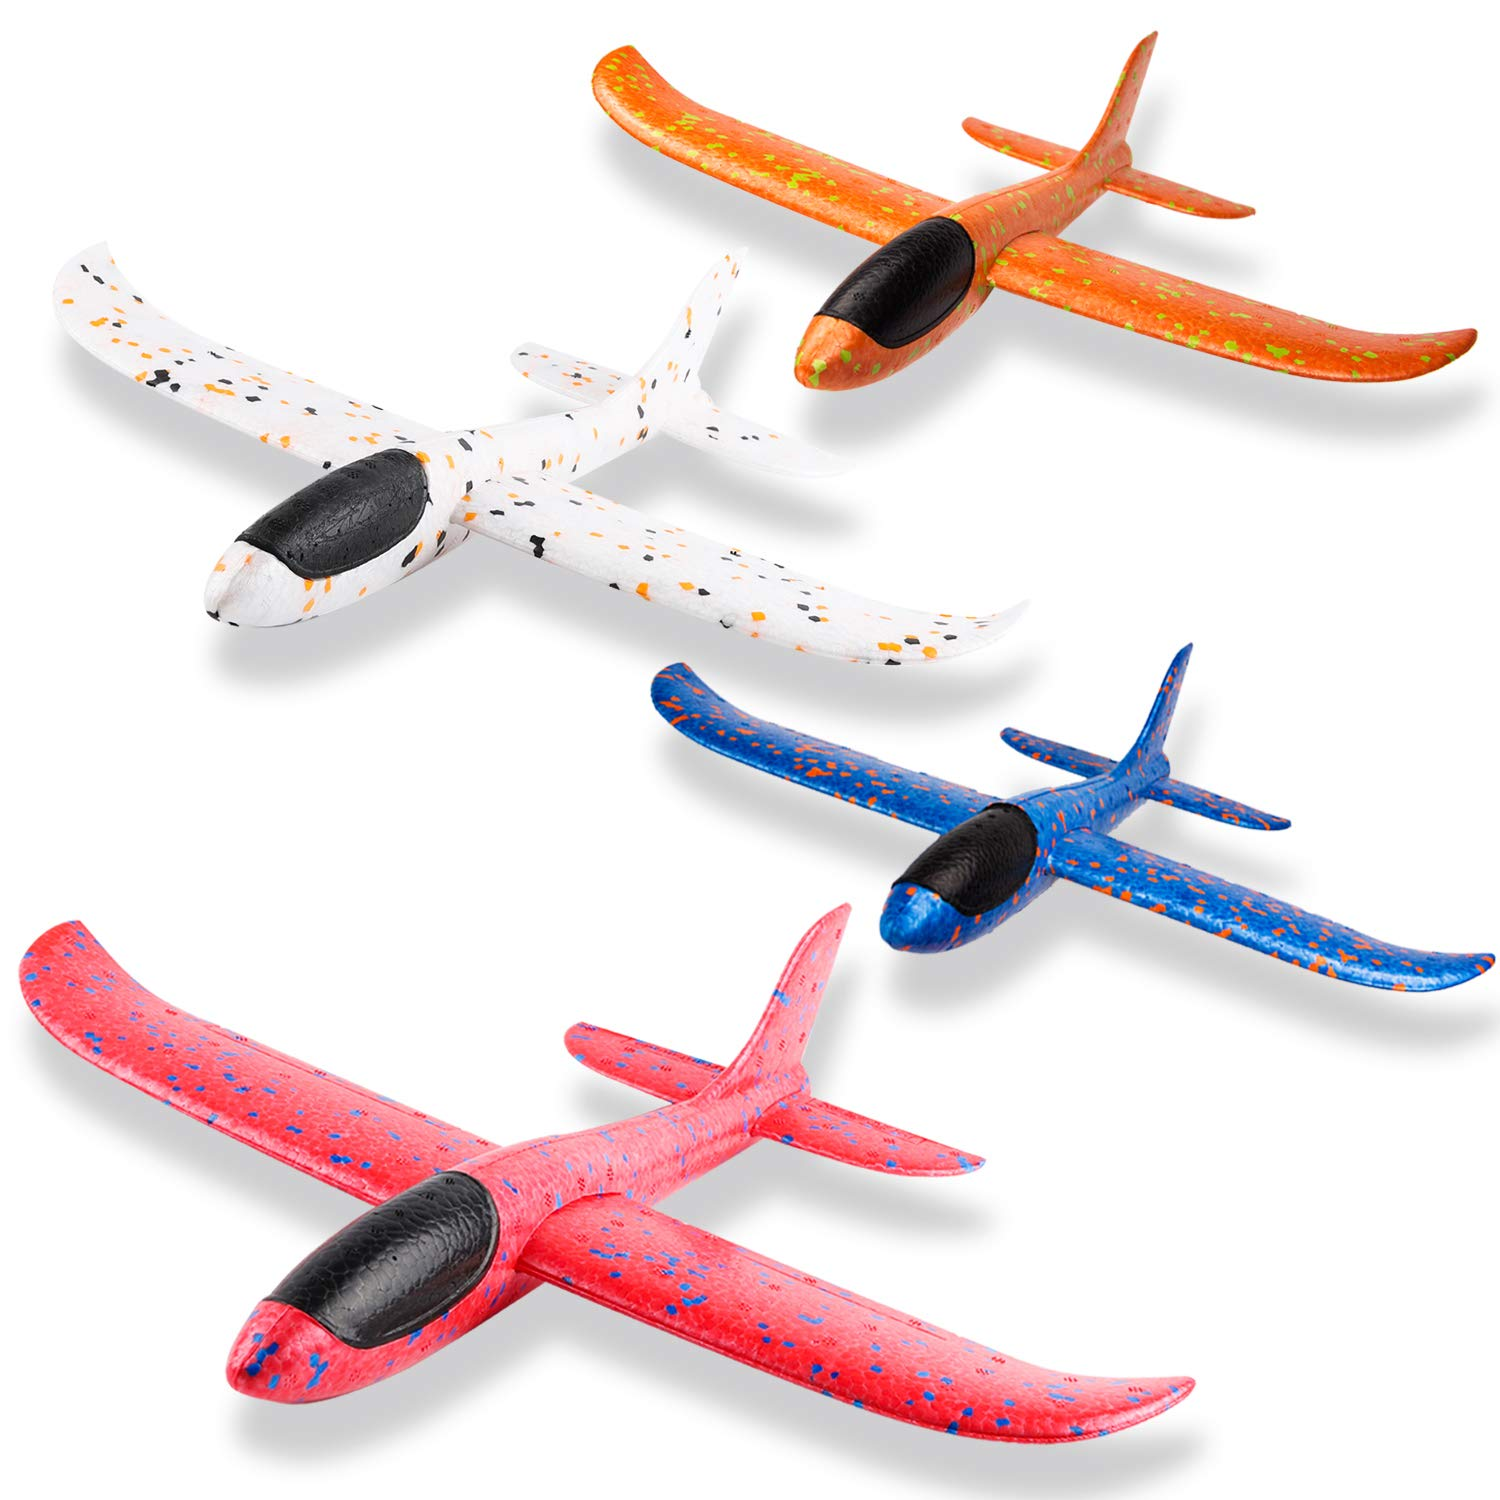 WATINC 4Pcs 13.5inch Airplanes, Manual Throwing Outdoor Sports Toys for Challenging, Children Games Toy Gliders Fun, Glider Plane for Kids, Birthday Gift Flying Gliders, Foam Airplane for Boys & Girls